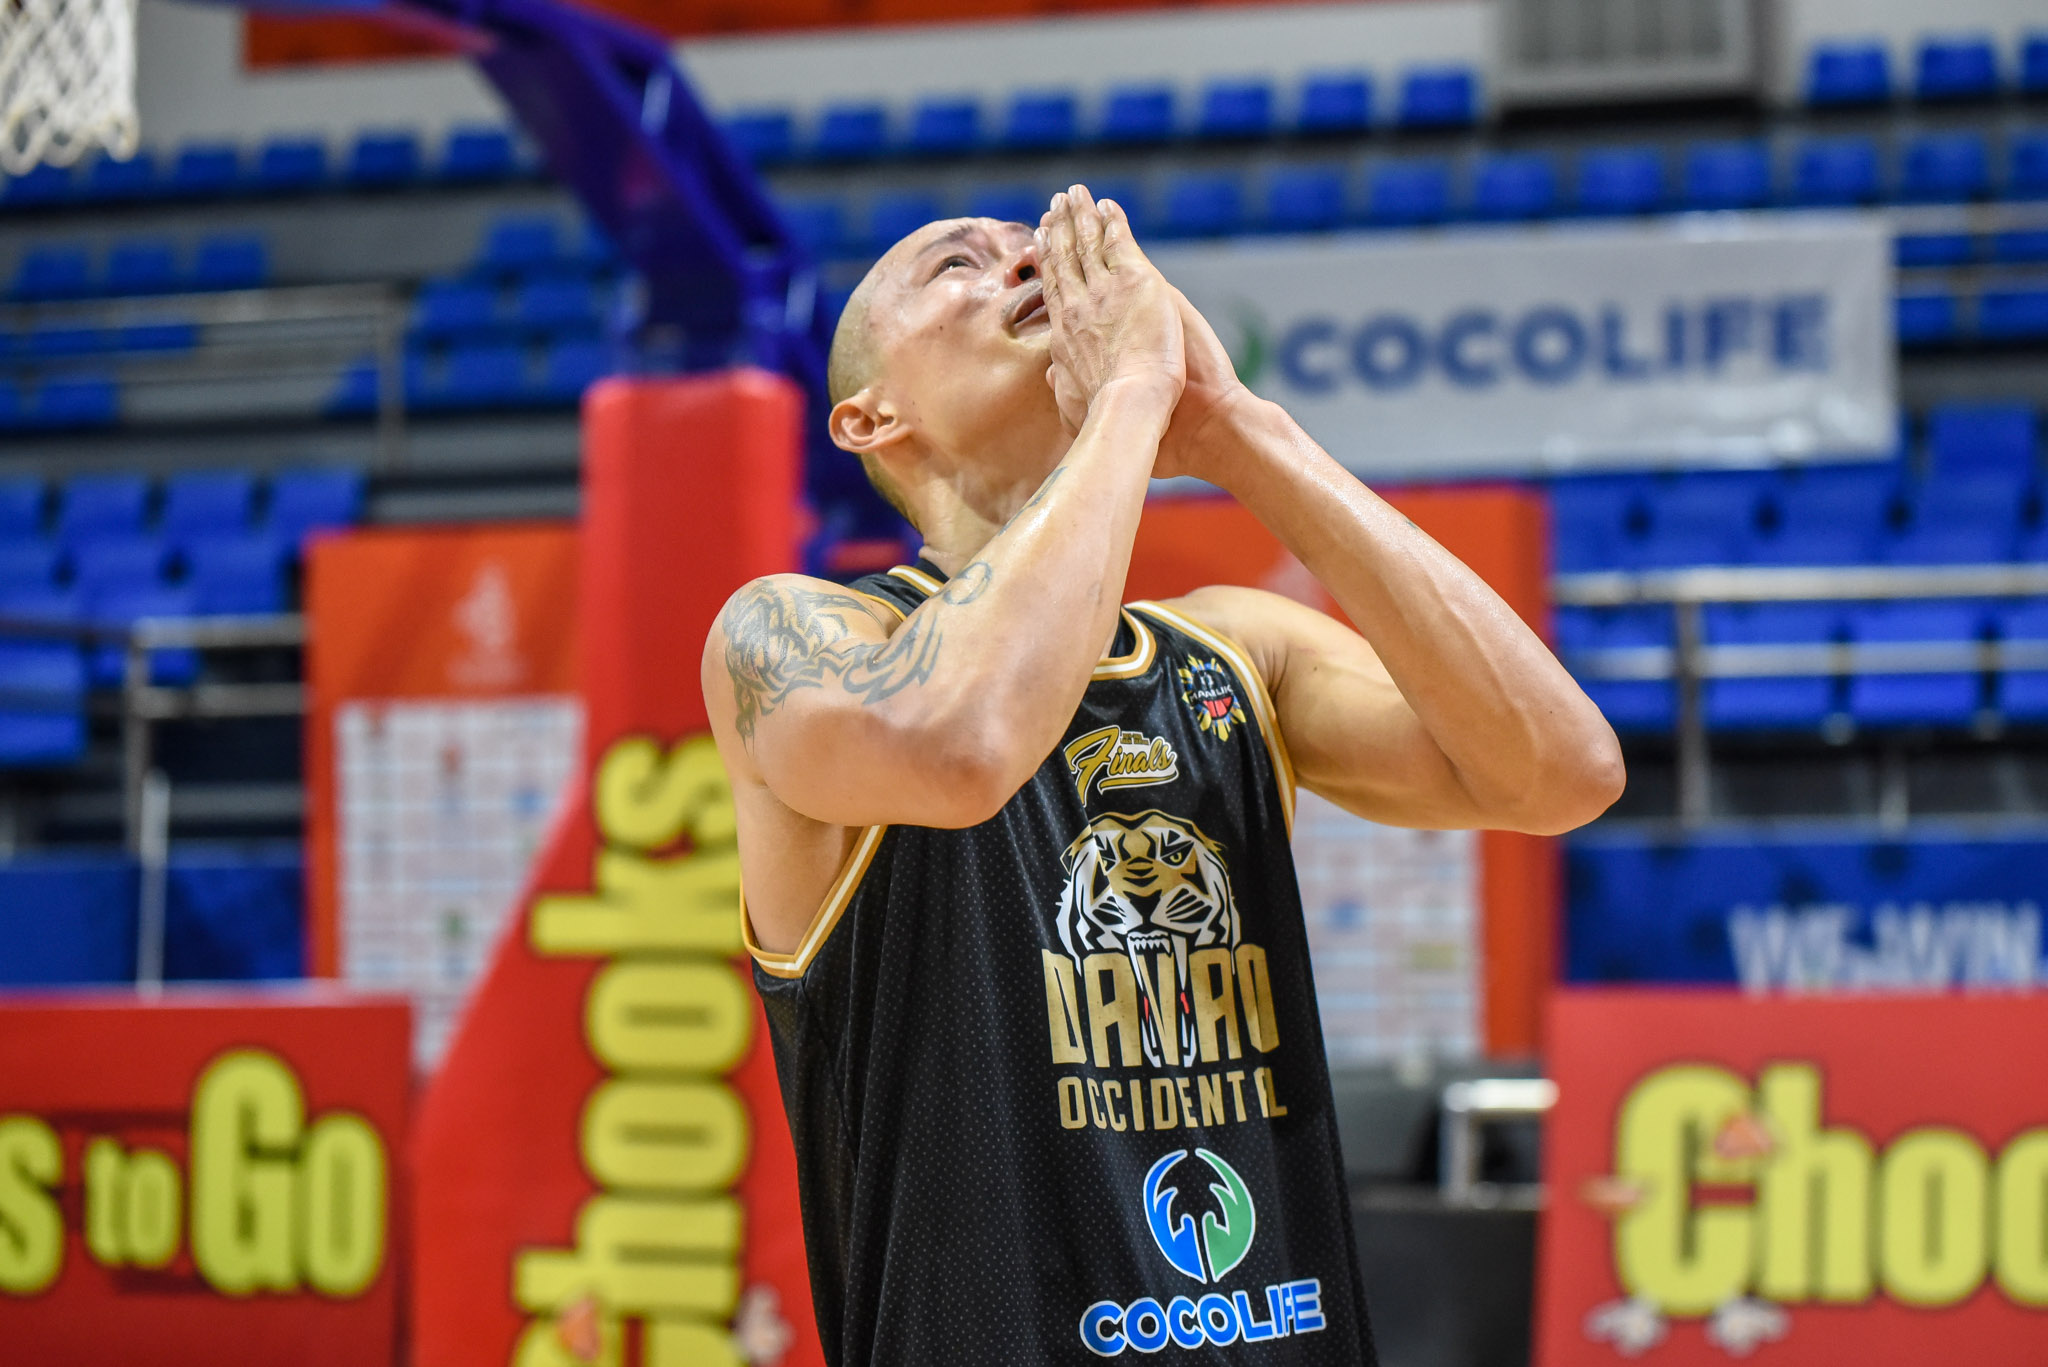 2021-Chooks-to-Go-MPBL-Lakan-Finals-Game-Four-Davao-Occidental-vs-San-Juan-Mark-Yee-2 Mark Yee relishes chance to represent PH with Manila Chooks 3x3 Basketball Chooks-to-Go Pilipinas 3x3 News  - philippine sports news